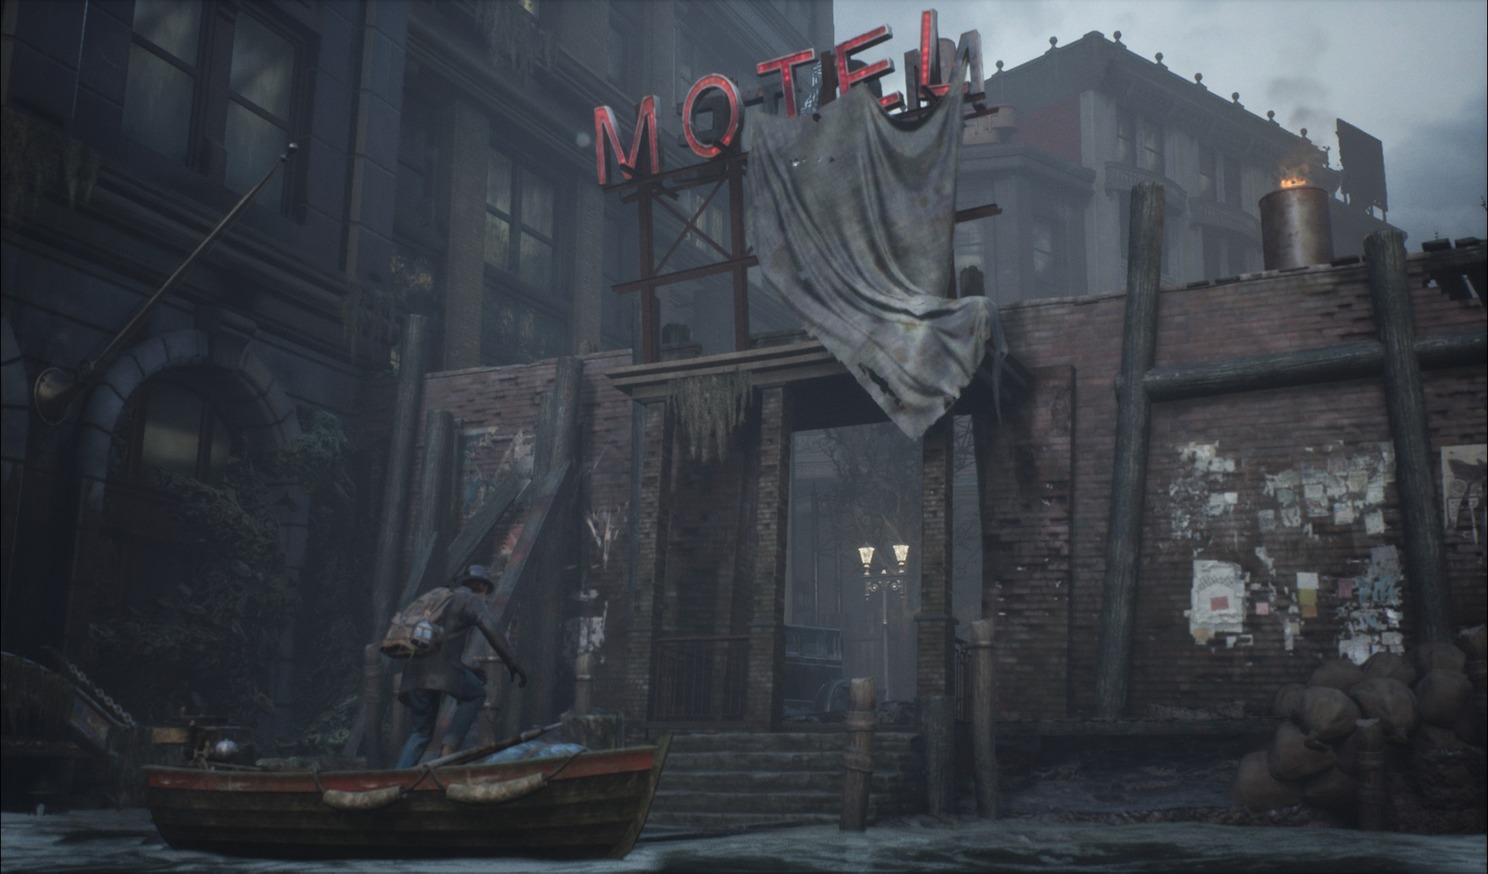 The Sinking City - Sinking City, the